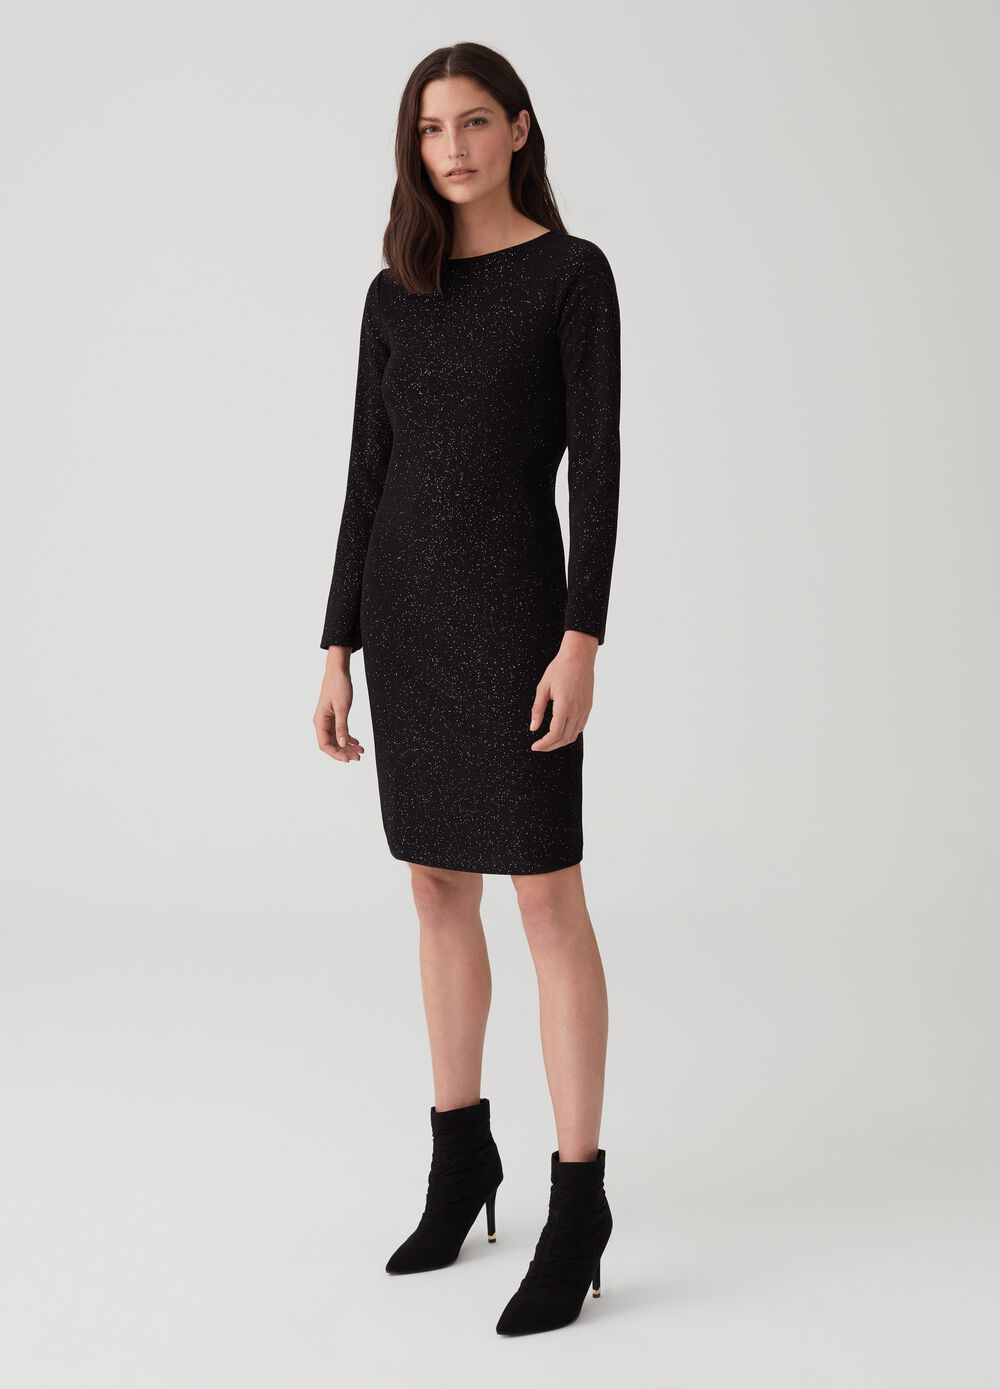 Boat neck dress with lurex